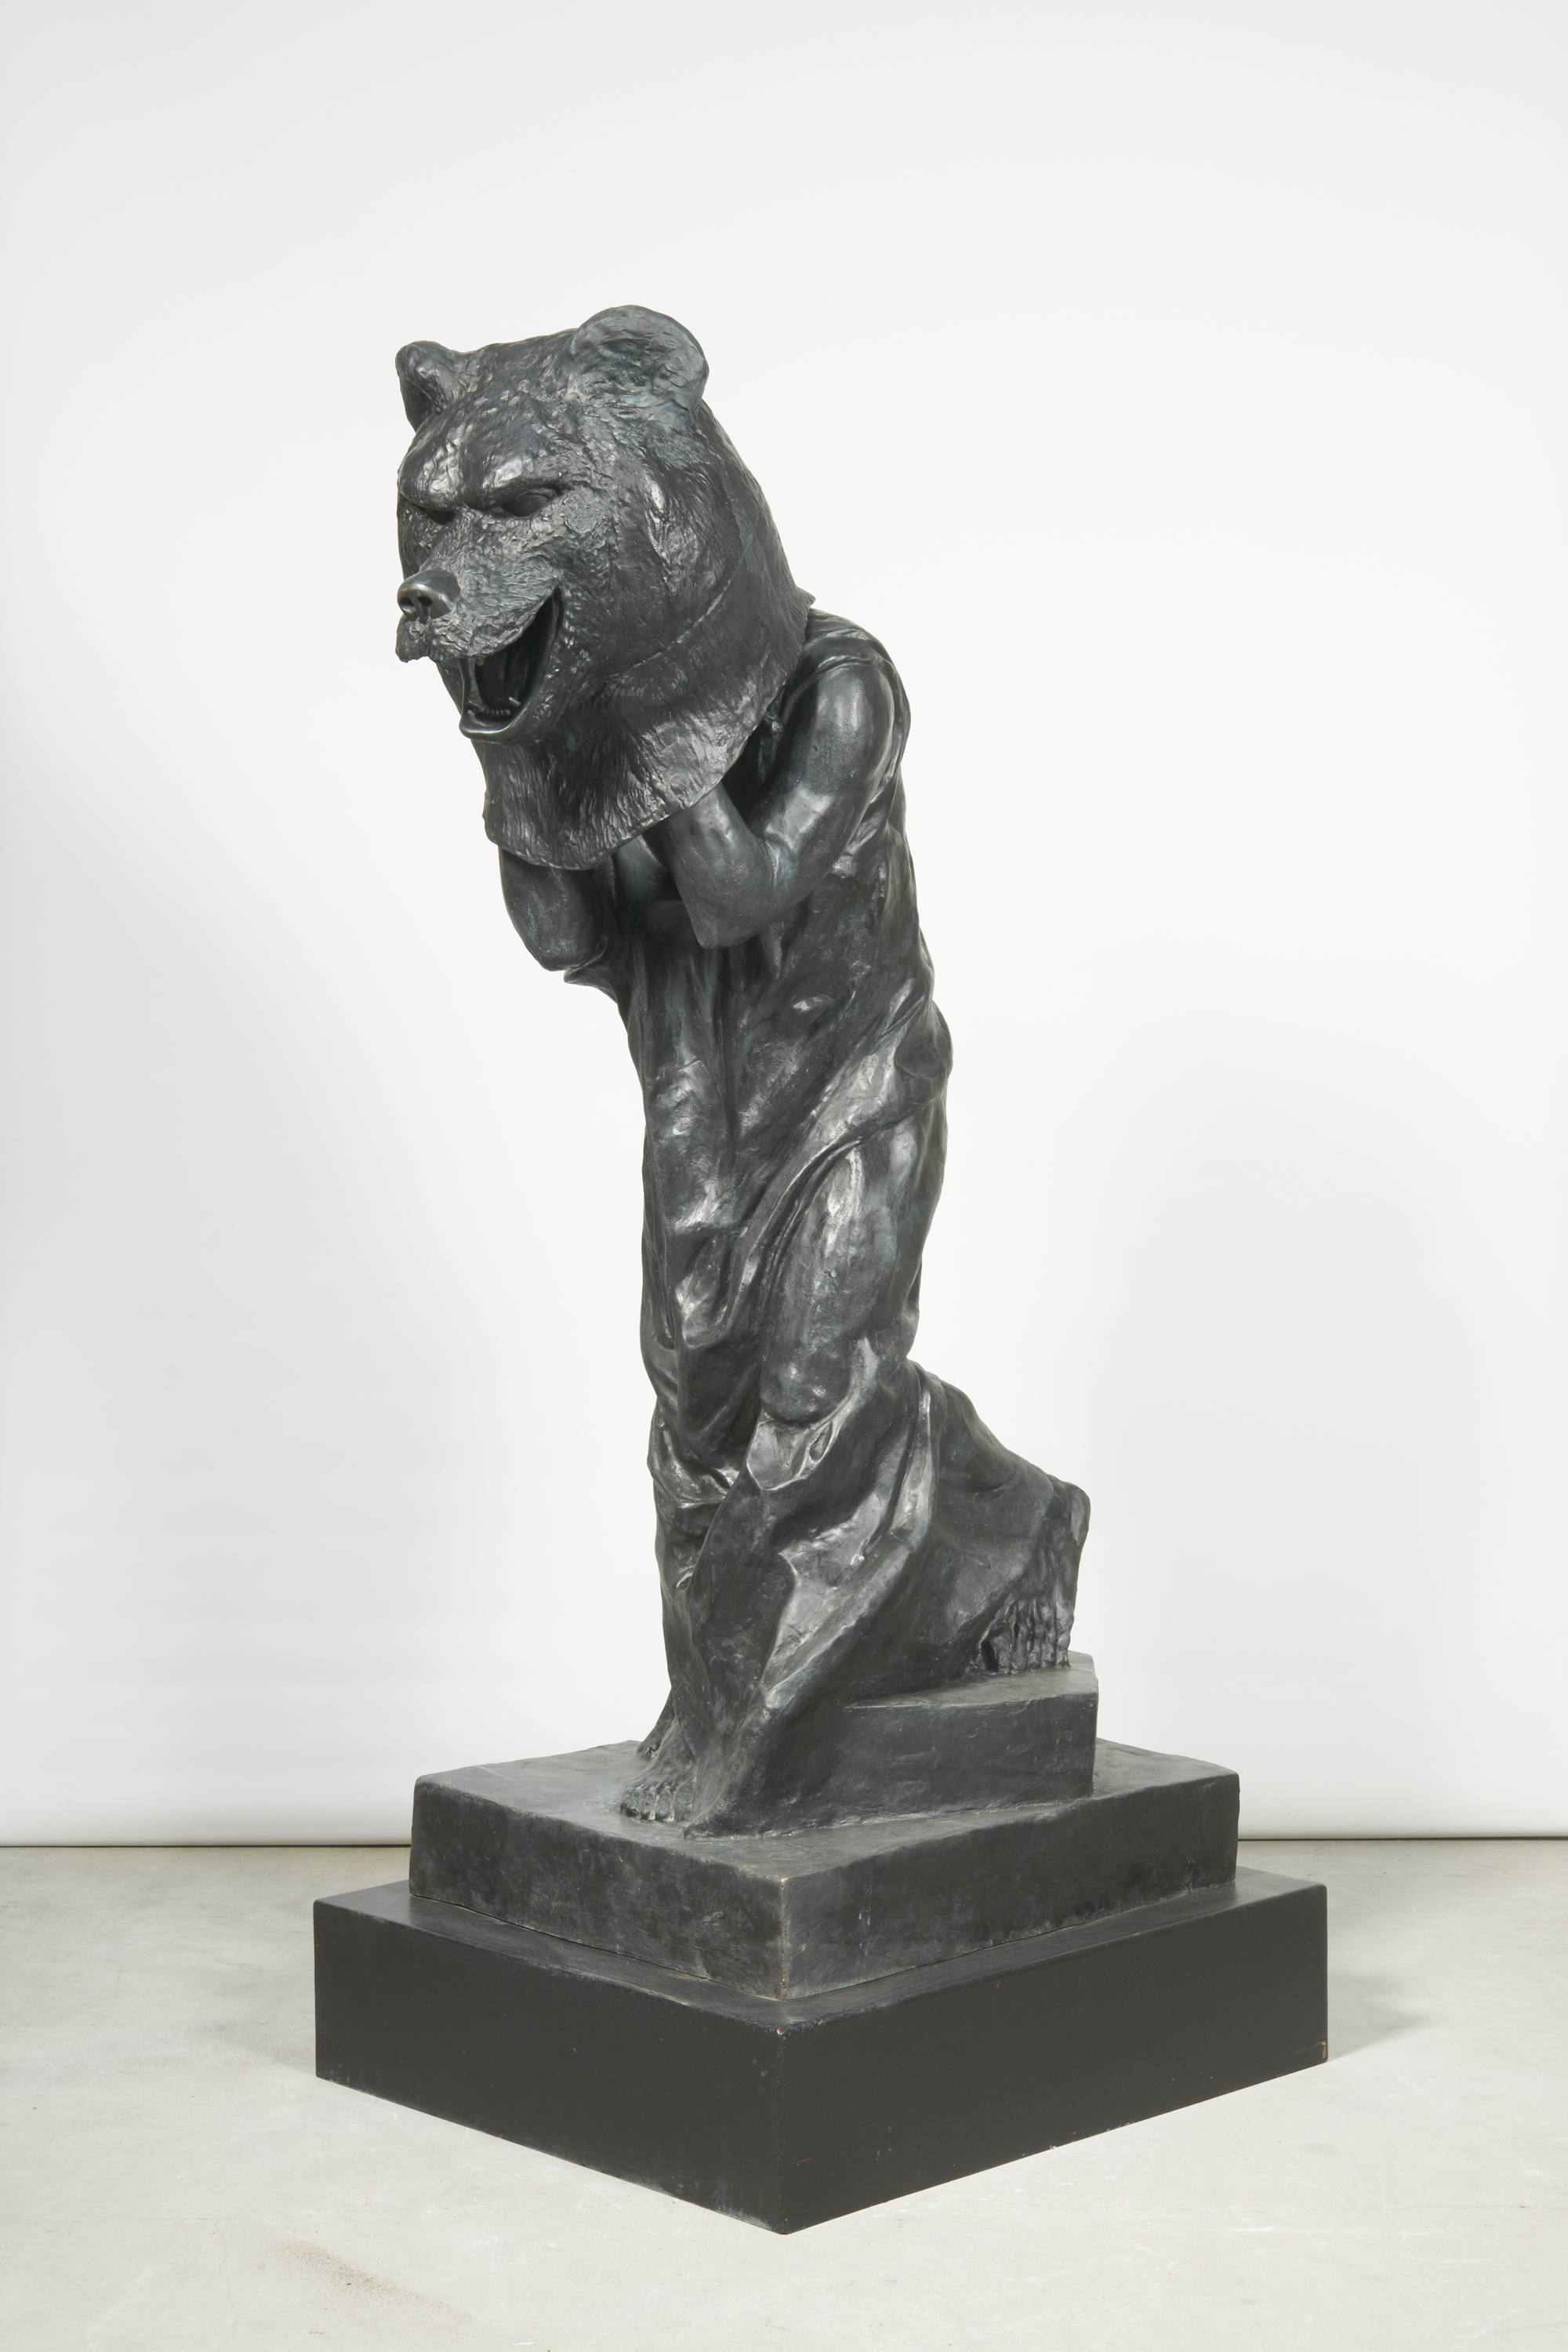 Nathan Mabry, Process Art (B-E-A-G-G-R-E-S-S-I-V-E), 2011 bronze, patina edition of 2 216 x 76 x 76 cm - 85 x 29 7/8 x 29 7/8 inches